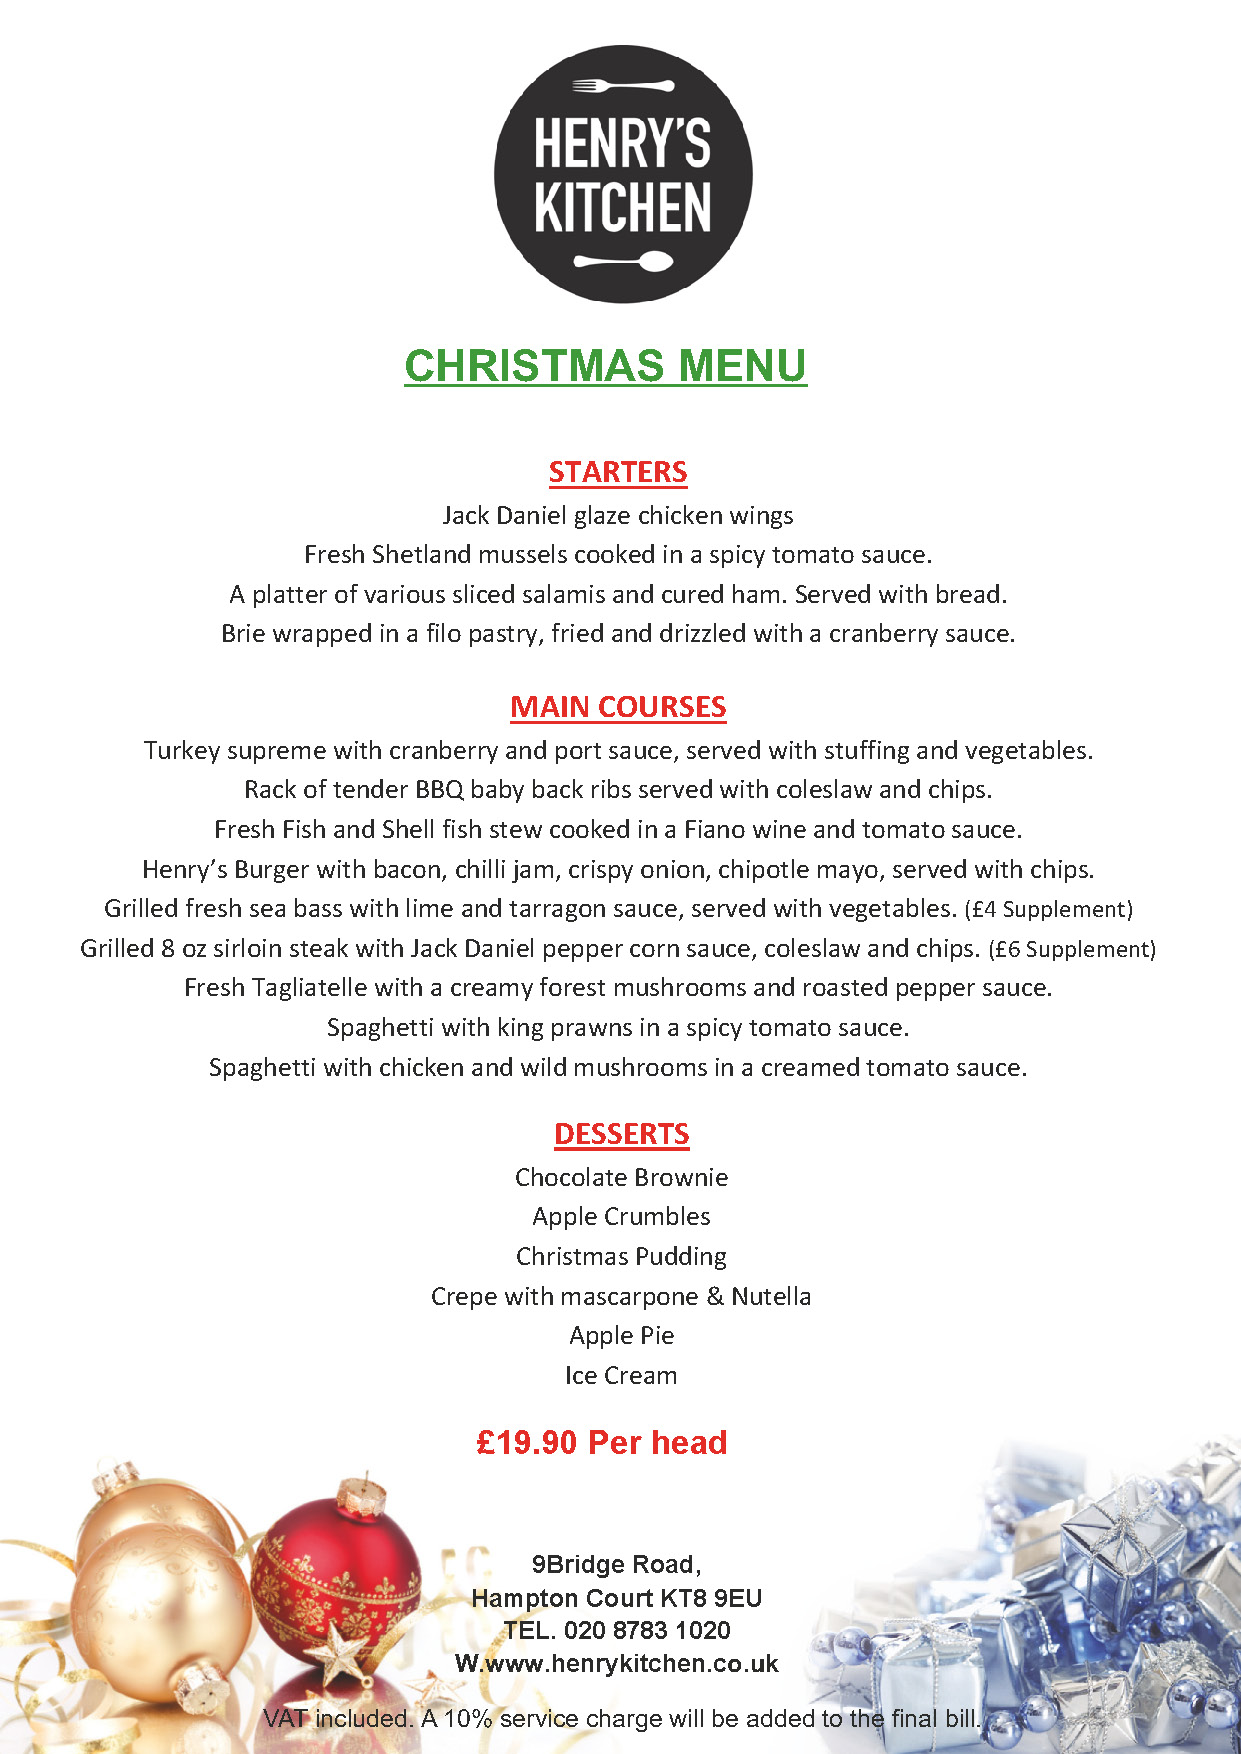 Christmas menu henrys kitchen restaurant in hampton court for H kitchen paris menu